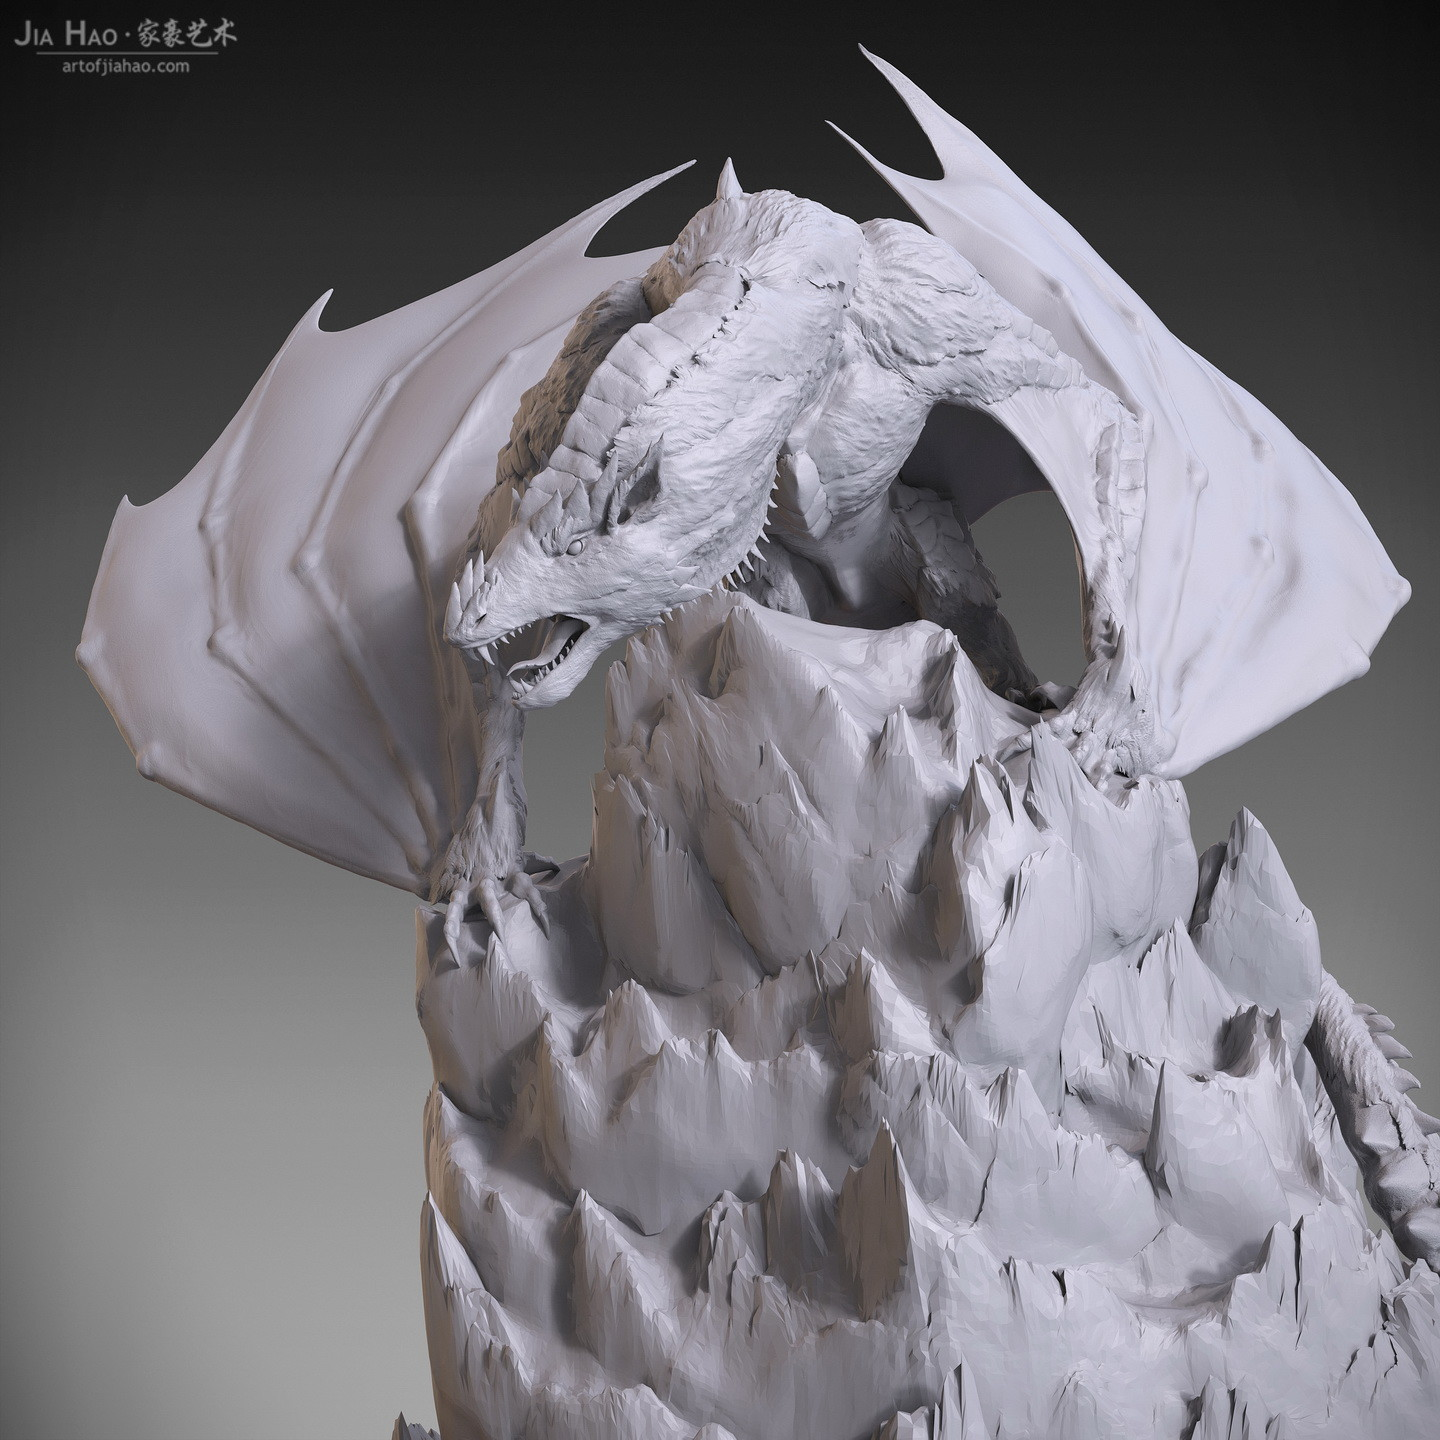 Jia hao 2018 snowdragon digitalsculpting 402